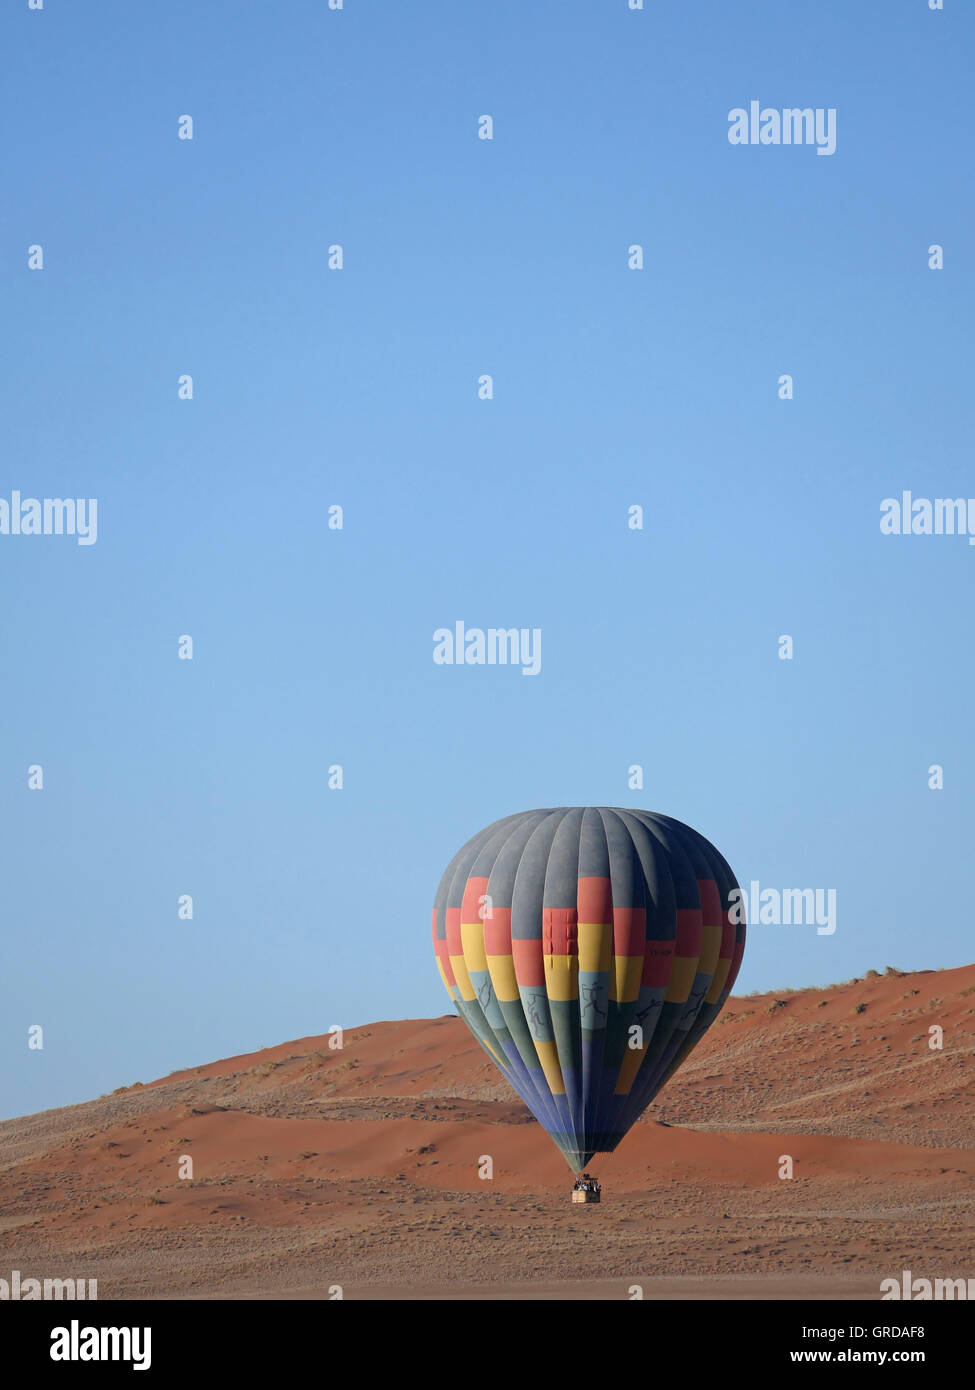 Hot-Air Balloon Flying Over The Namib Desert, Namibia - Stock Image